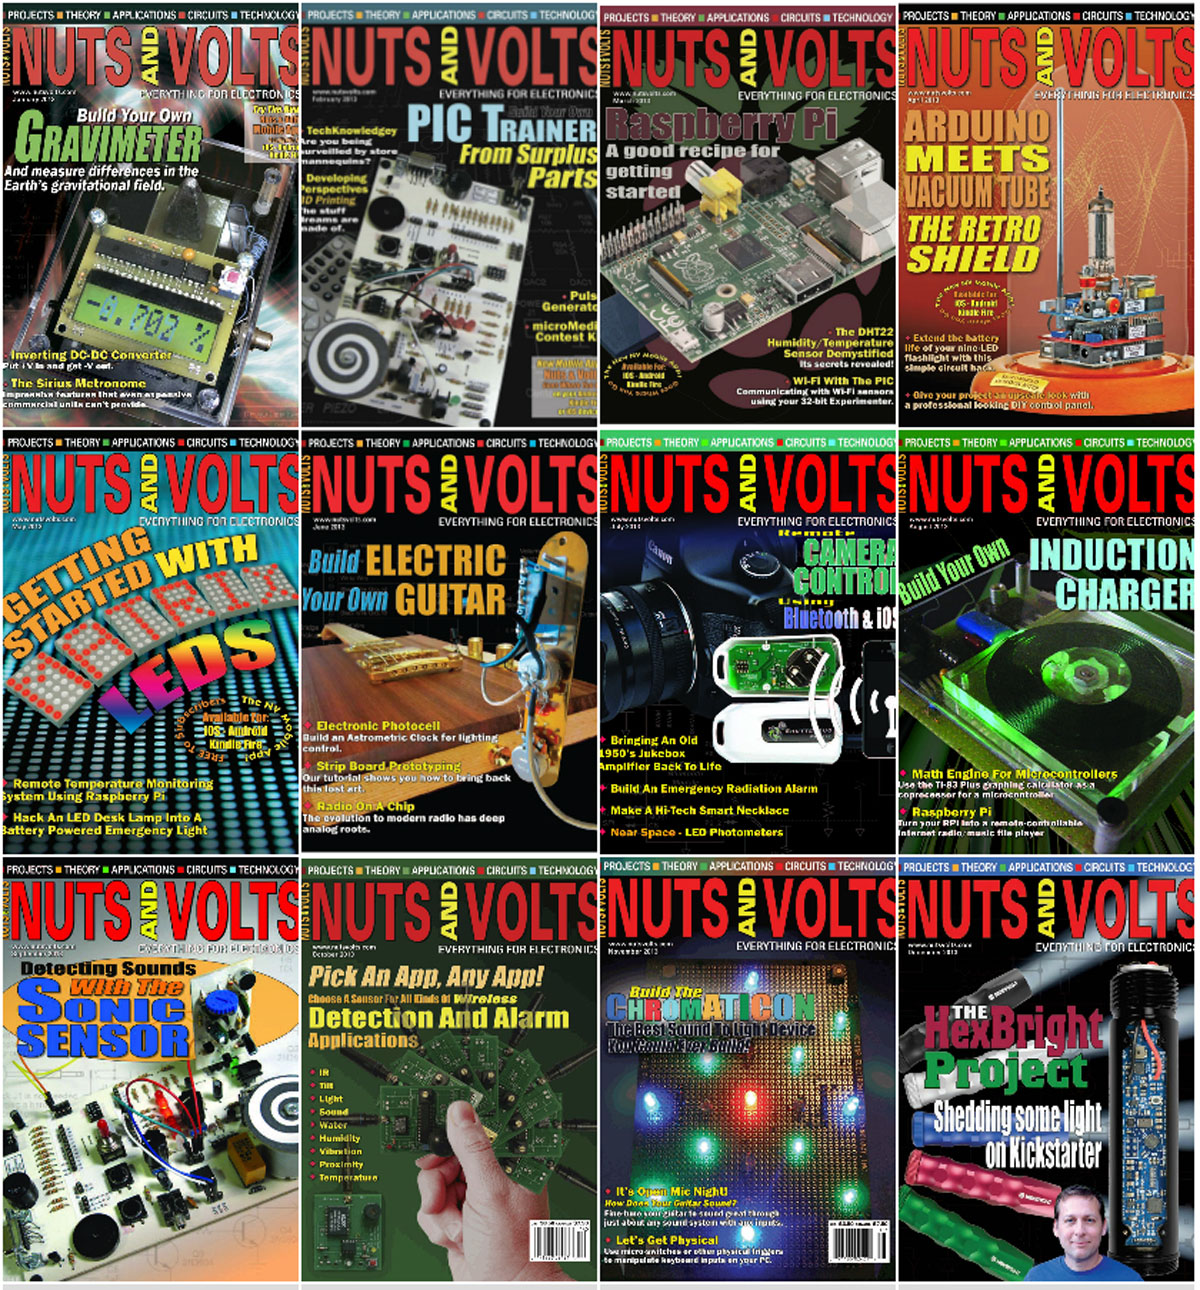 Nuts and Volts - Full Year 2013 Issues Collection free download